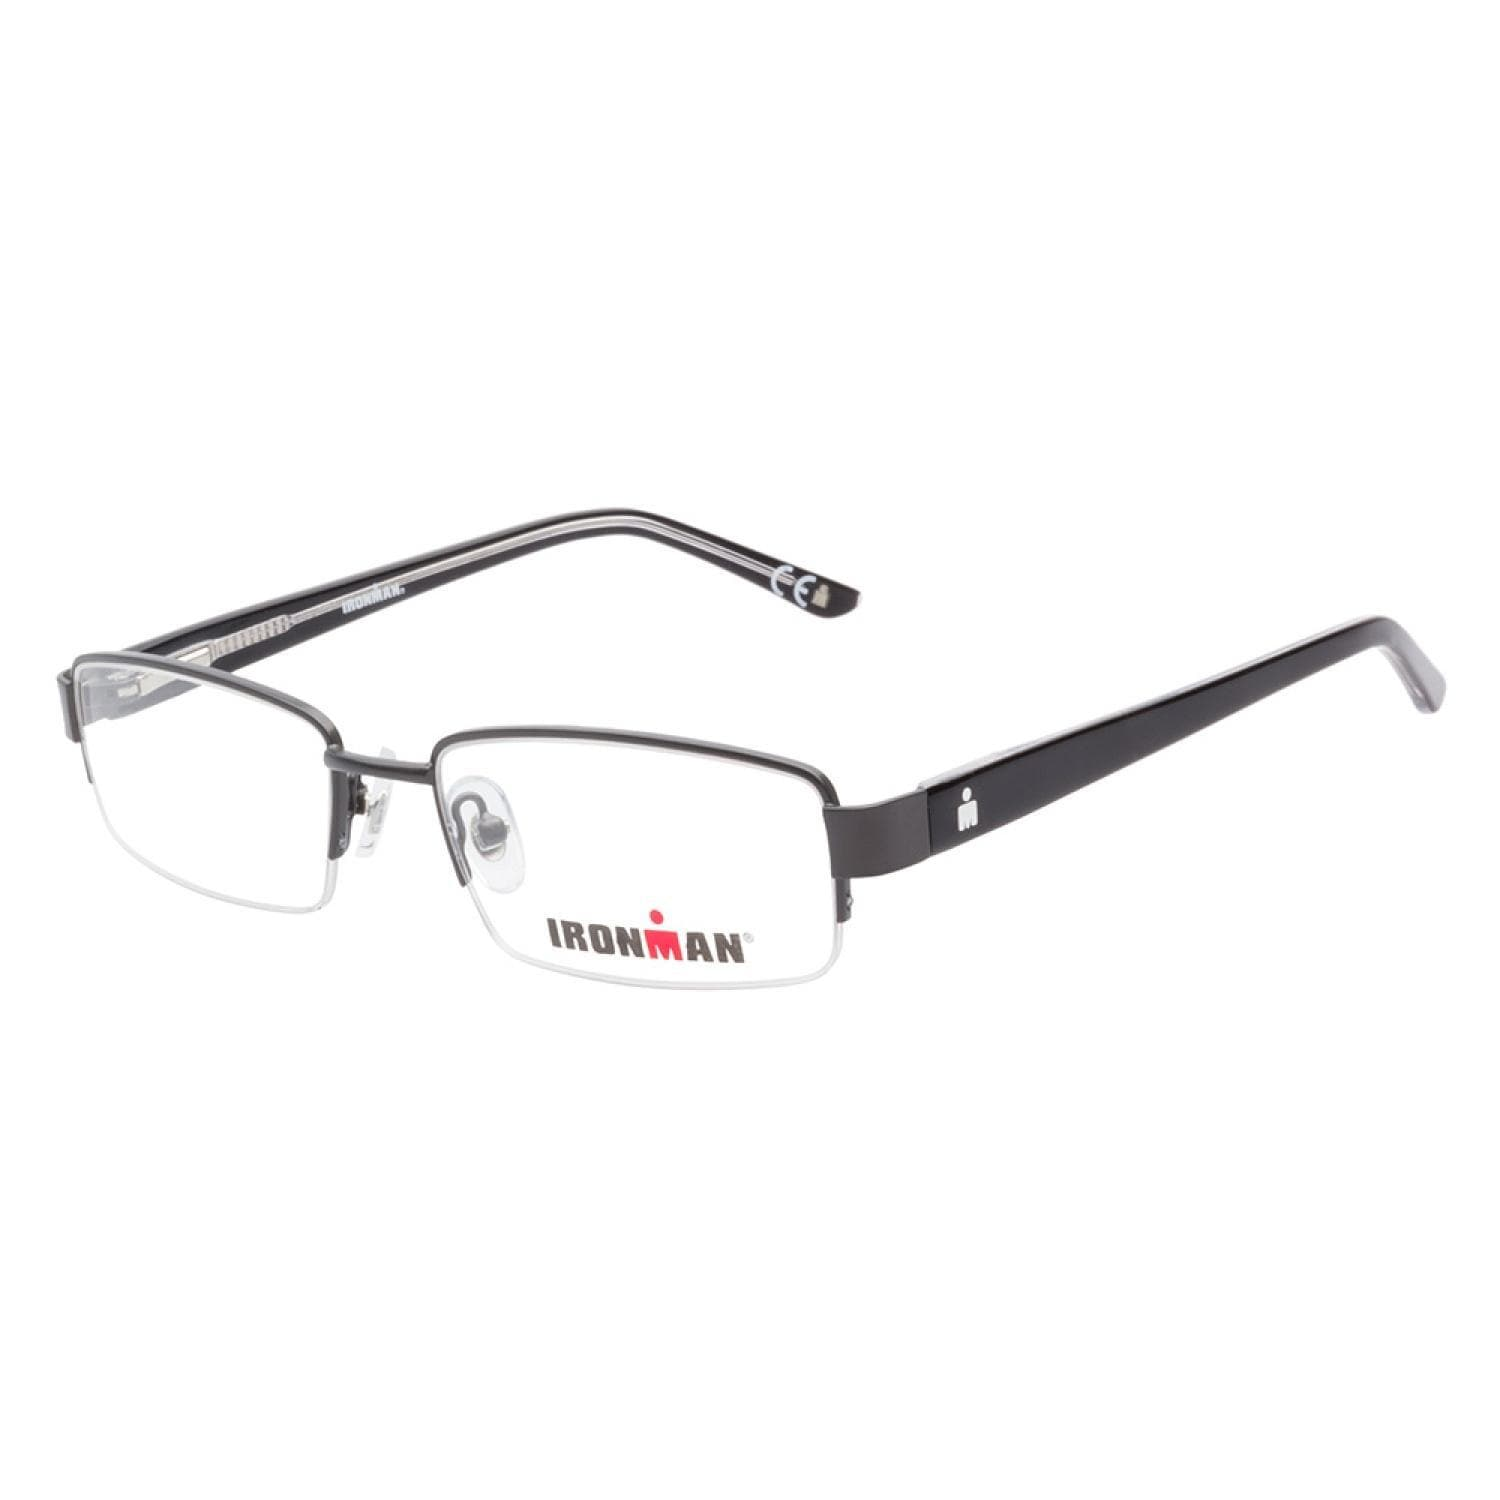 69faf55ea1 Shop Ironman 102 Gunmetal Prescription Eyeglasses - Free Shipping ...